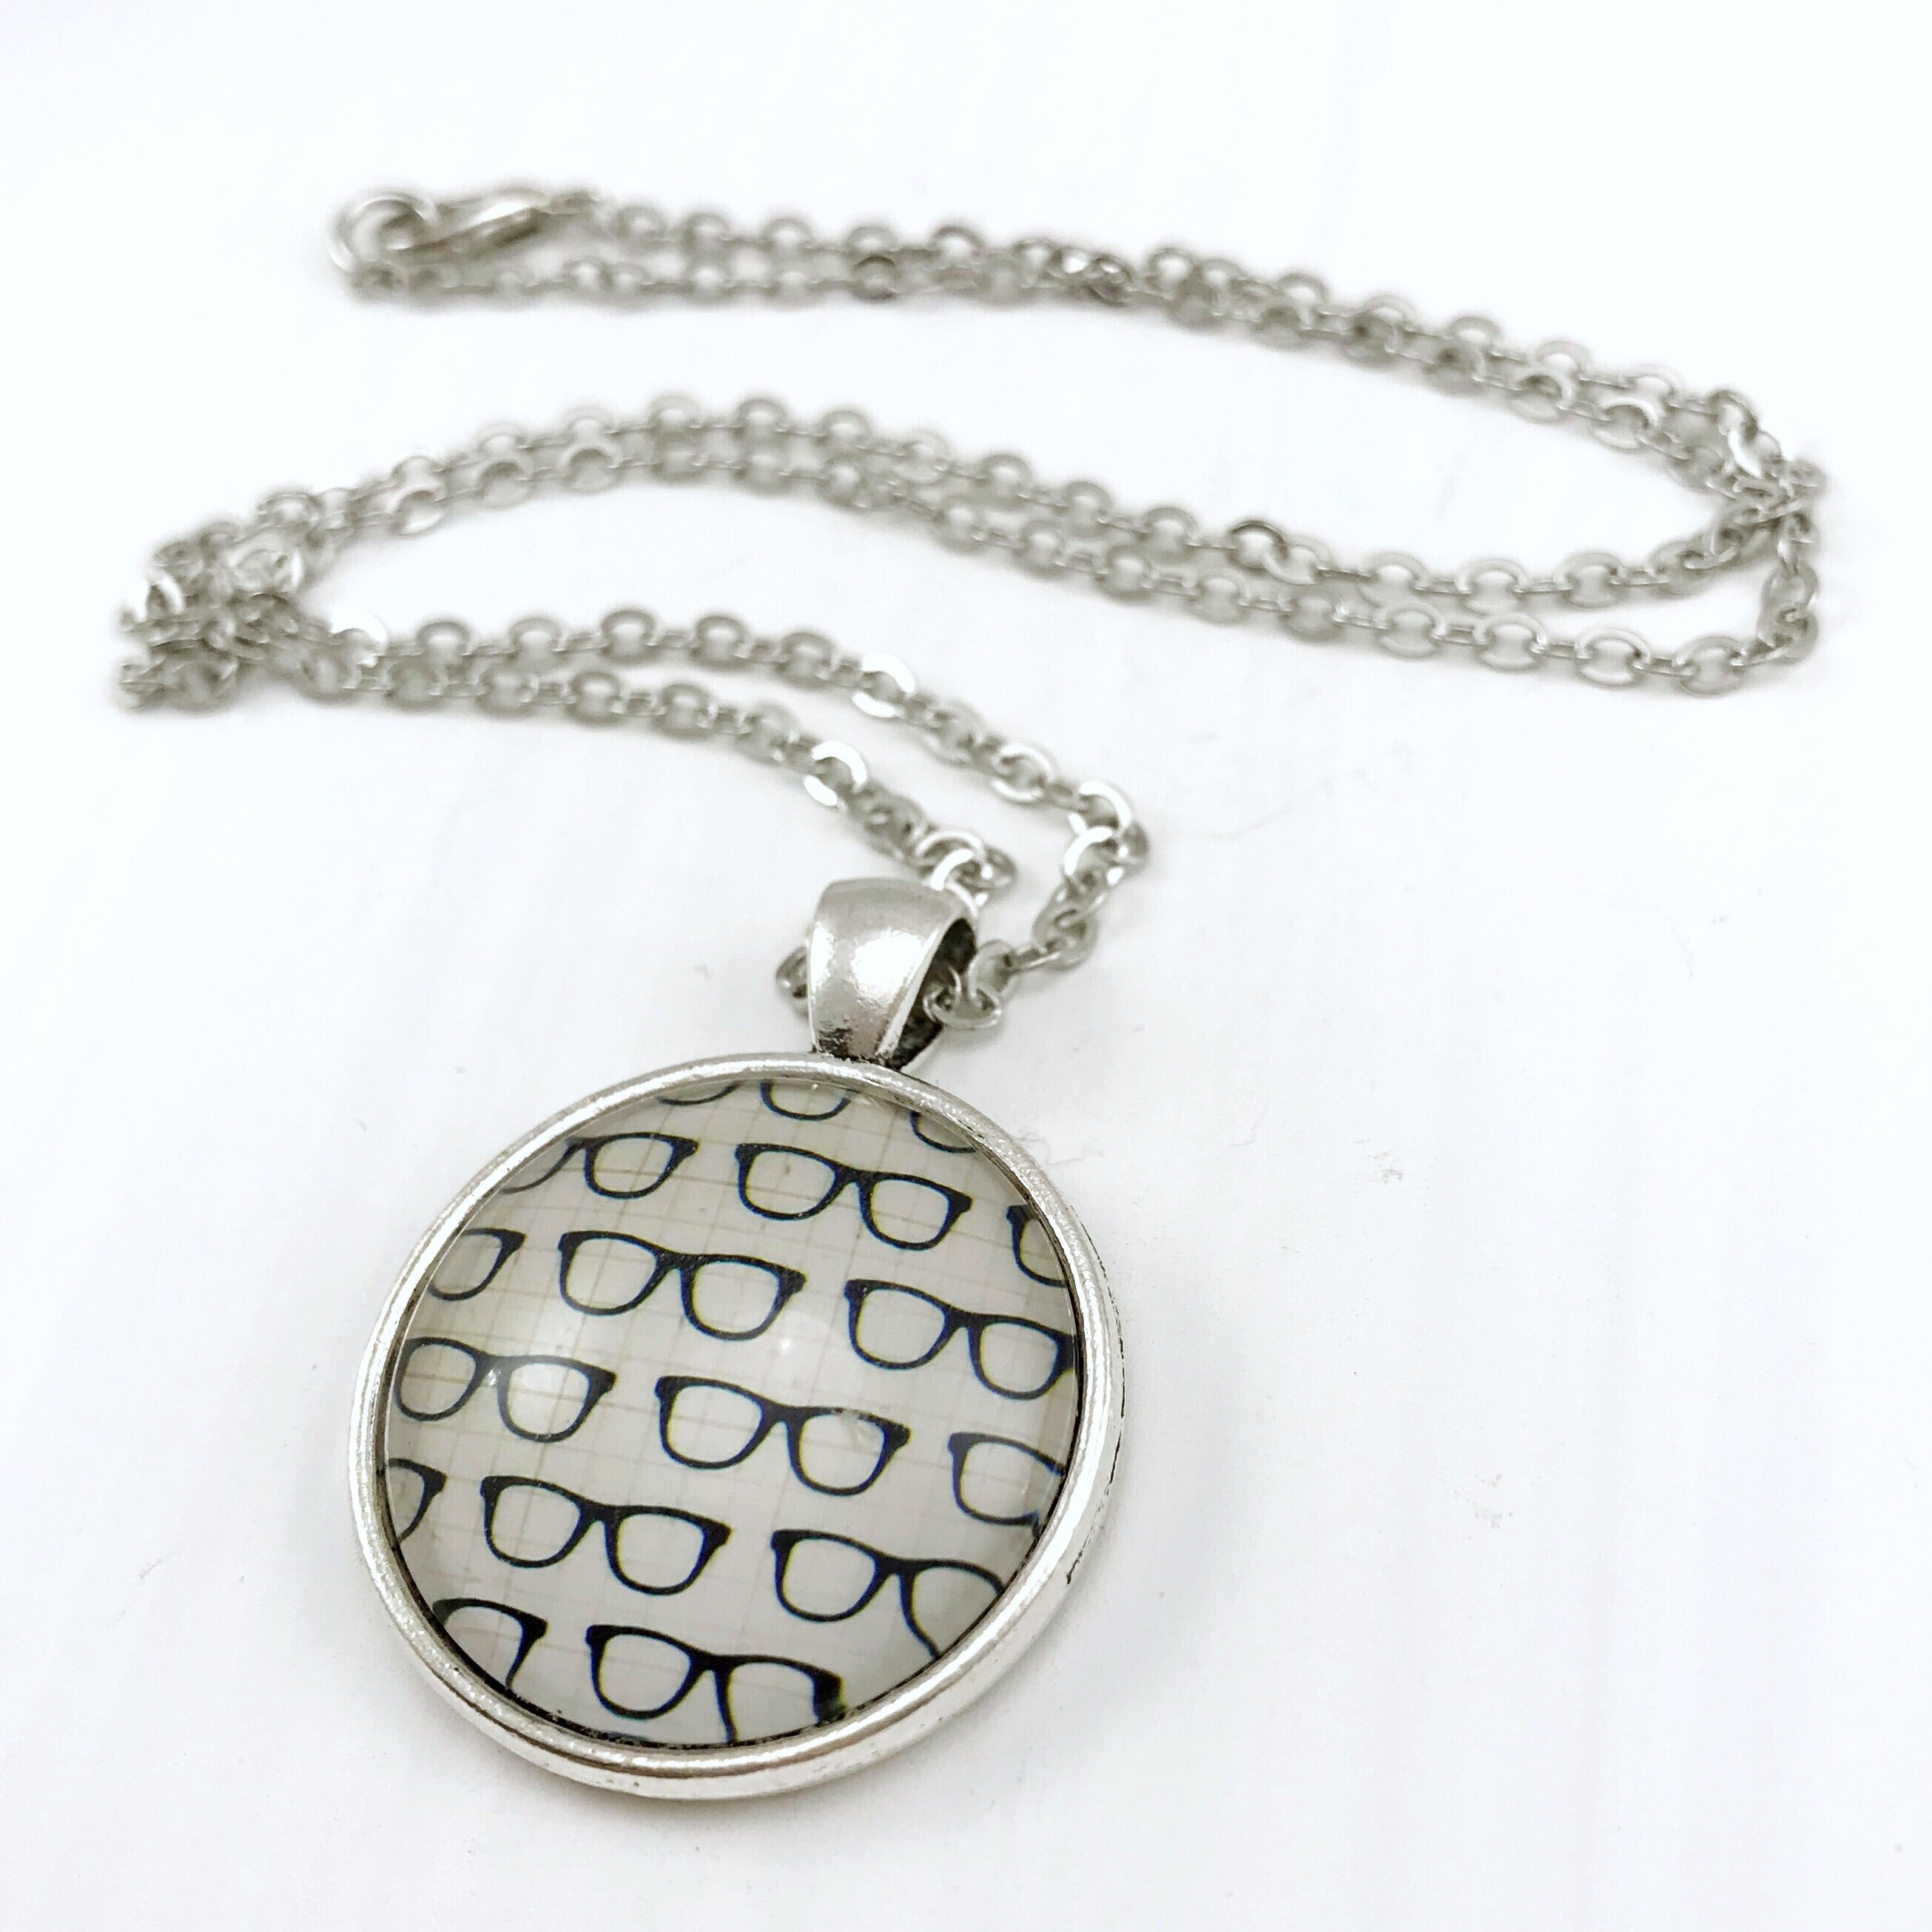 Glasses Necklace - Antique Silver